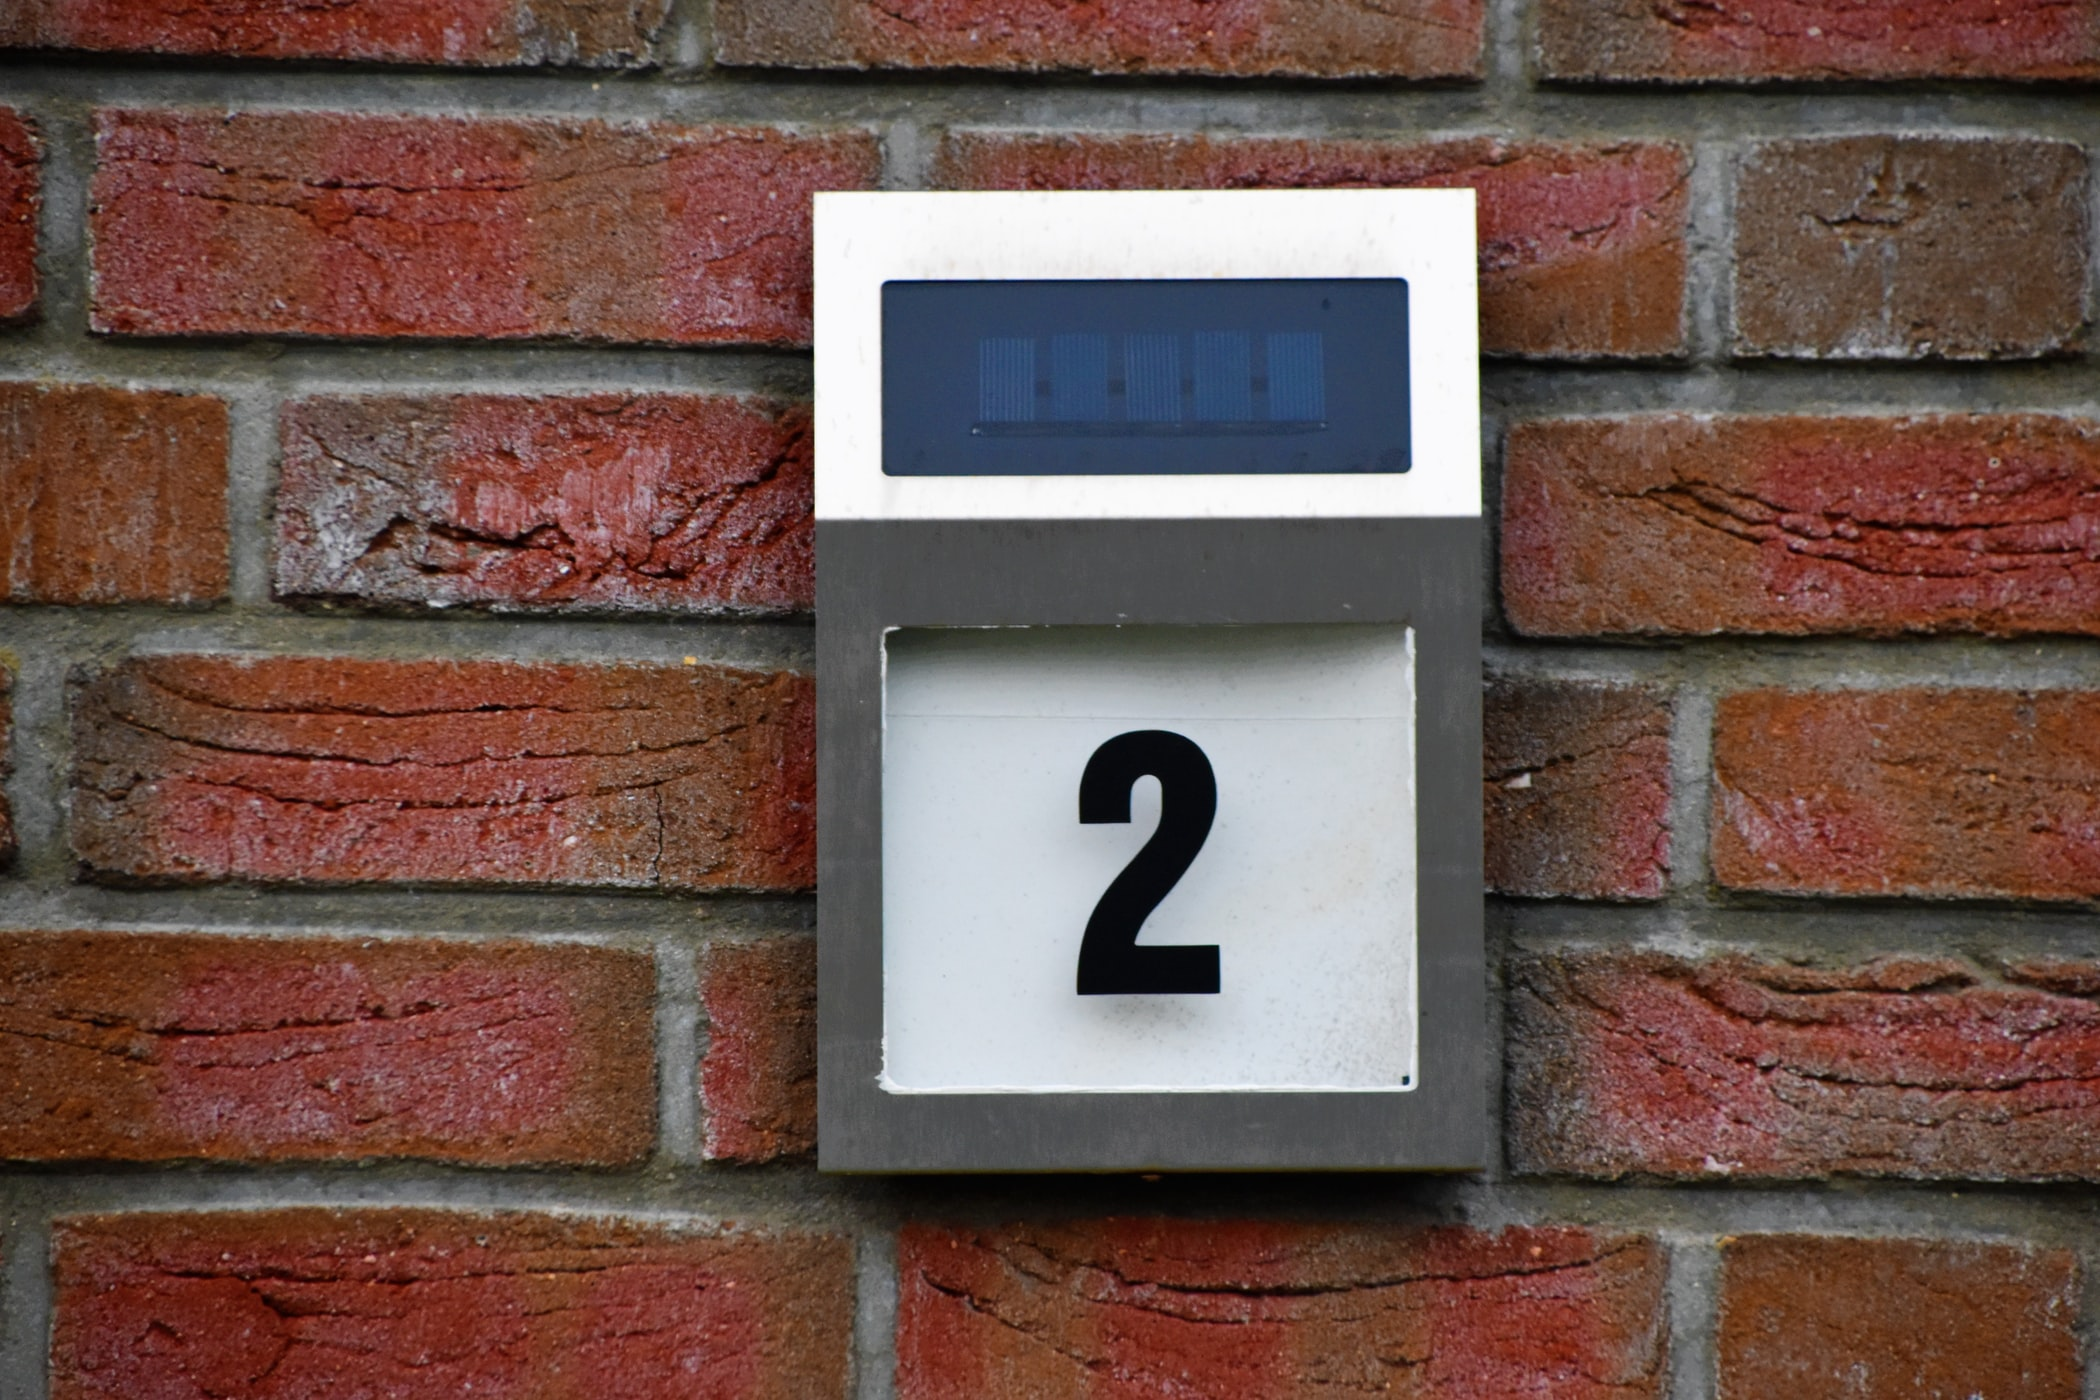 Sign showing the number 2 hung on a brick wall